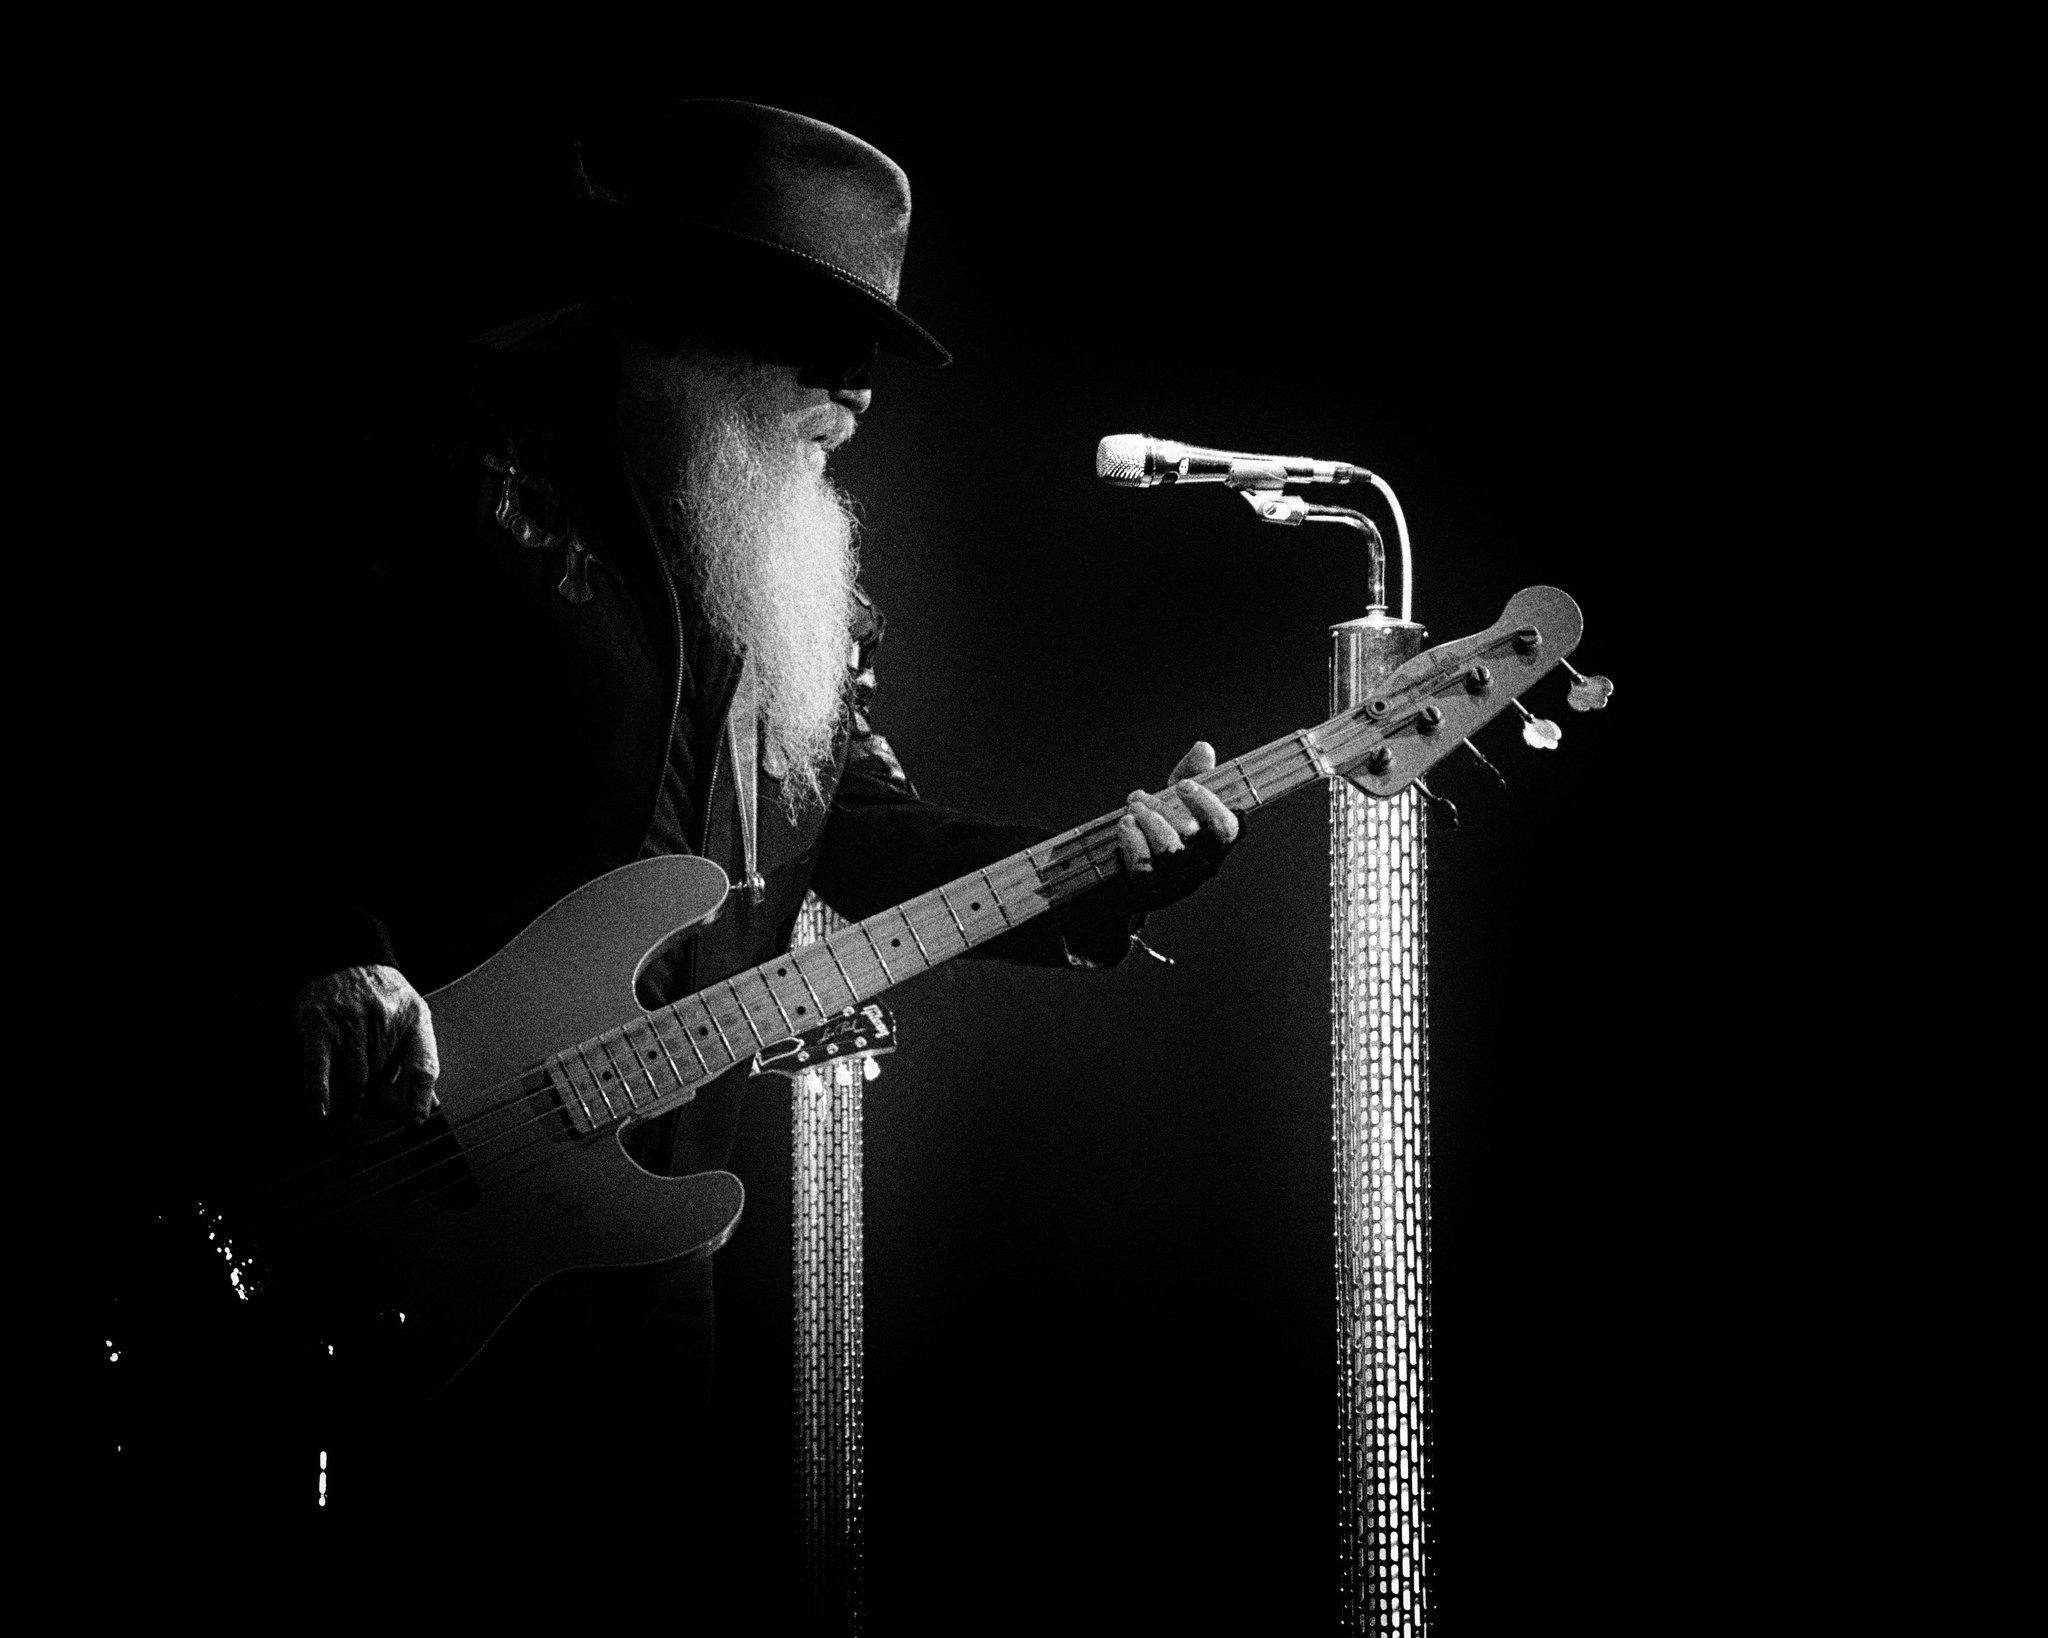 Happy birthday to one of our very own, Dusty Hill!